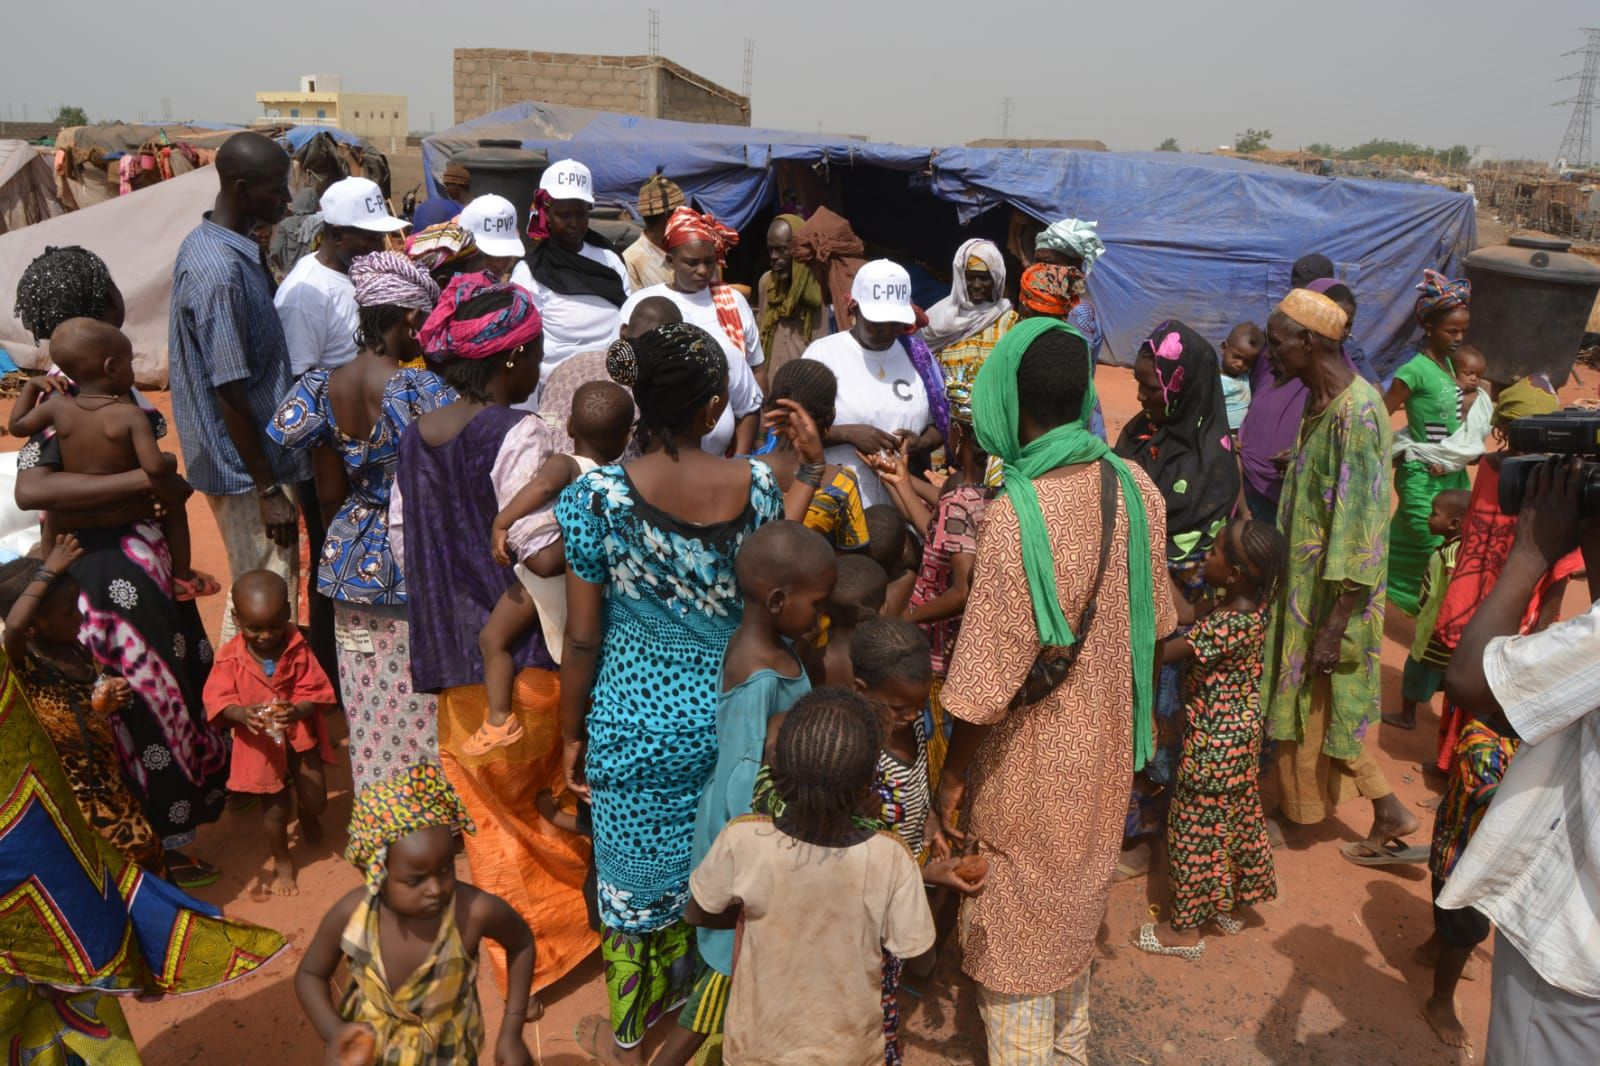 CPVP Rescued 305 People from Dehydration and Starvation